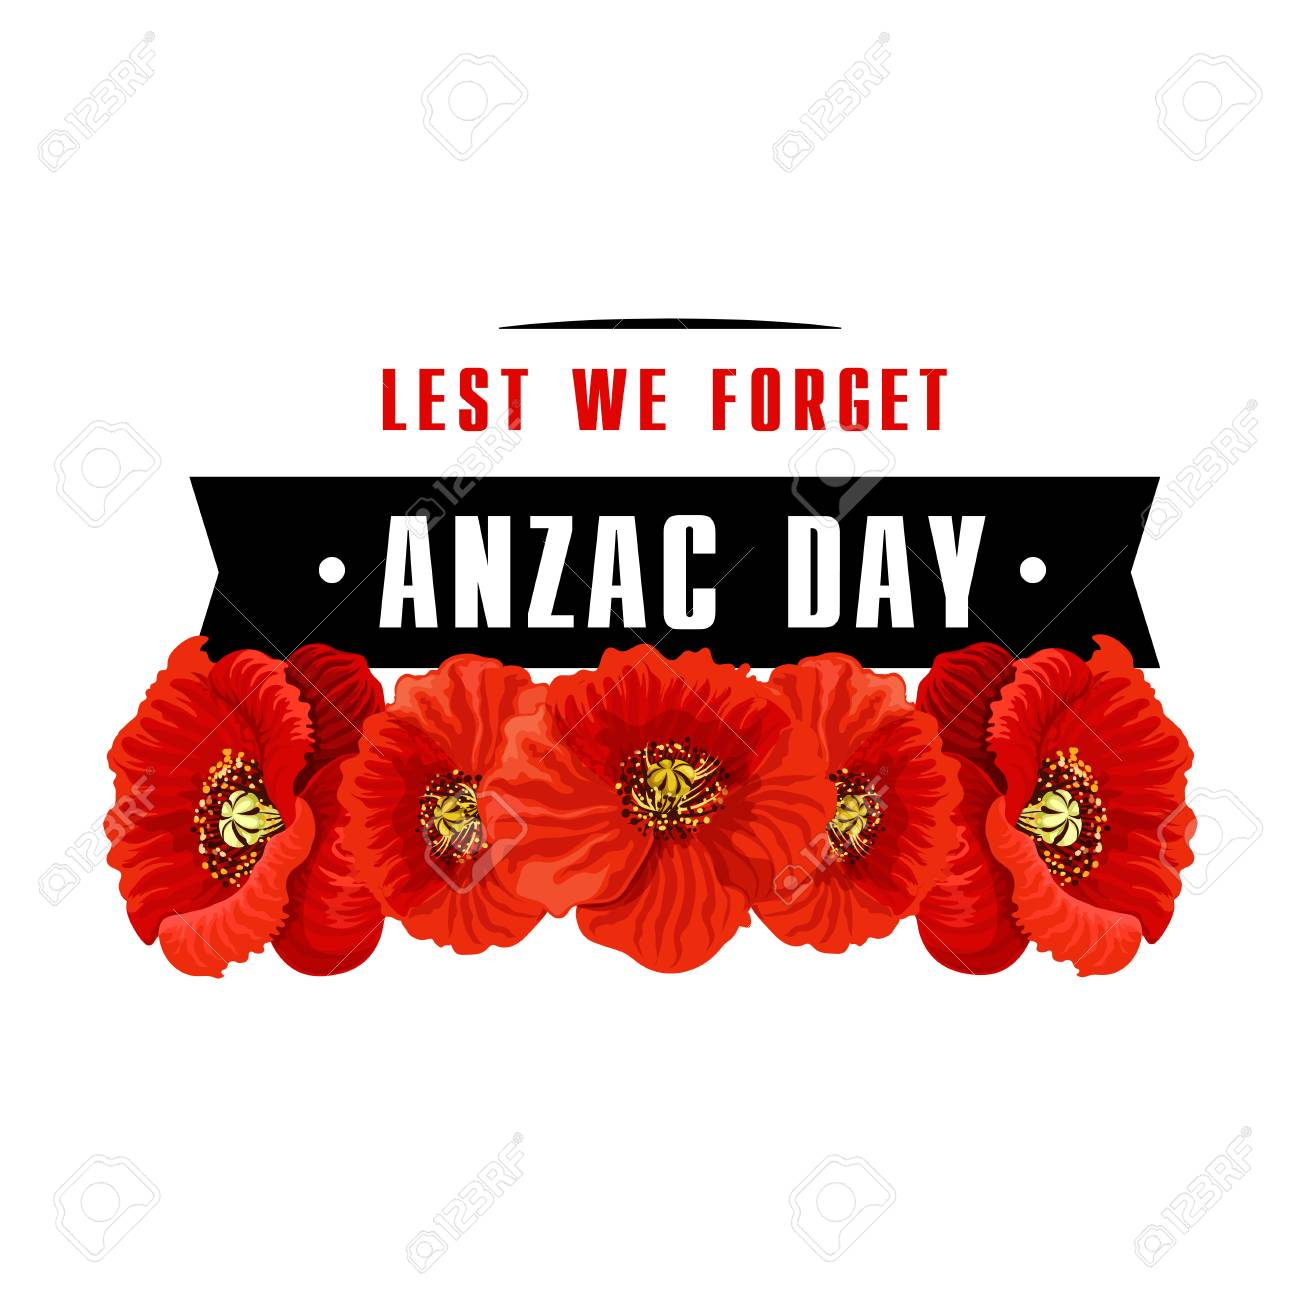 Anzac poppy flower icon with lest we forget banner royalty free anzac poppy flower icon with lest we forget banner stock vector 94133417 mightylinksfo